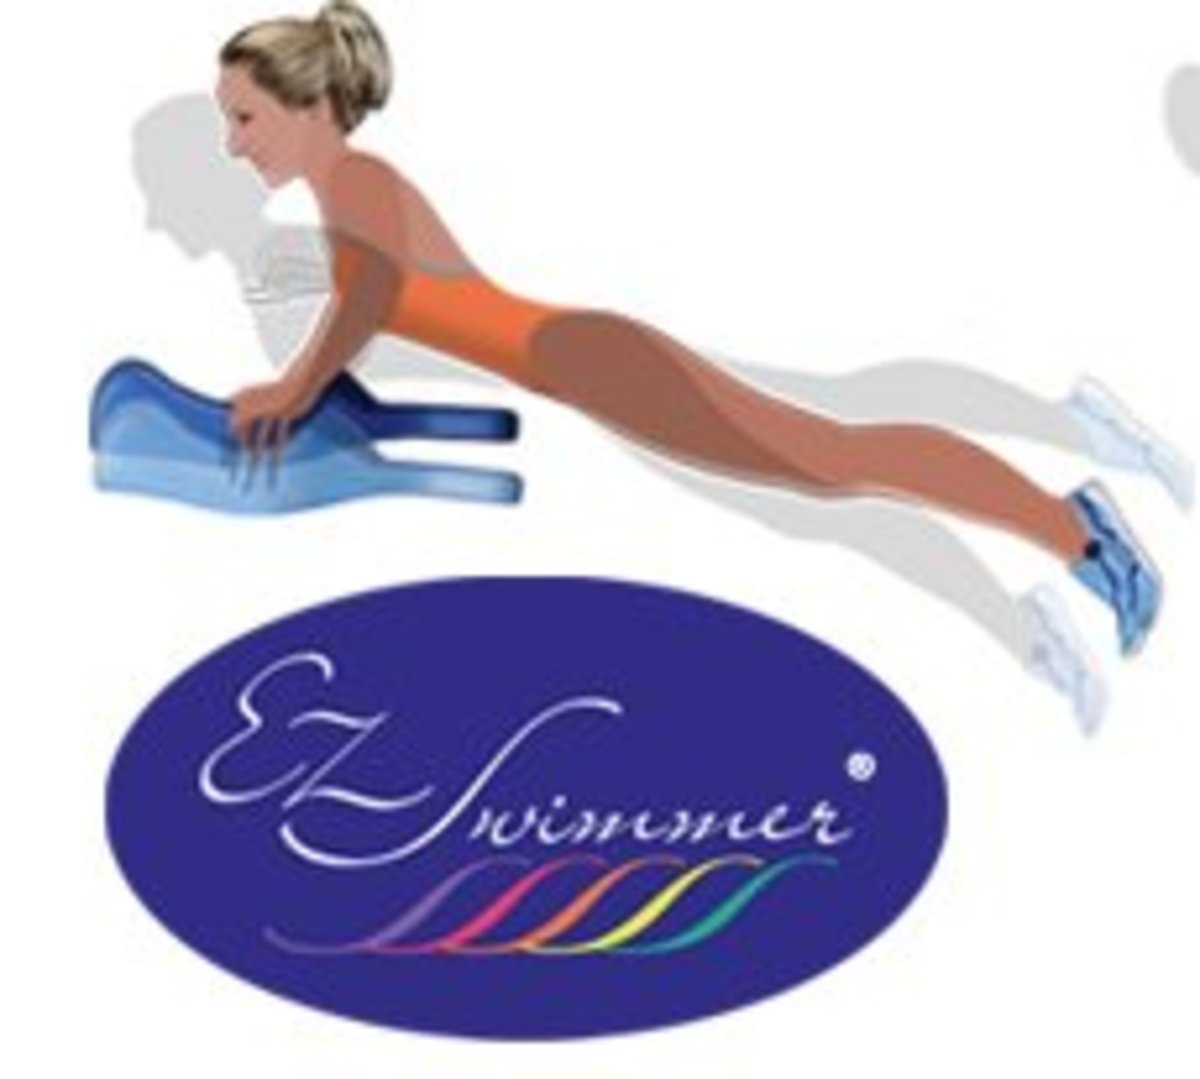 EZ Body Board - EZ Swimmer